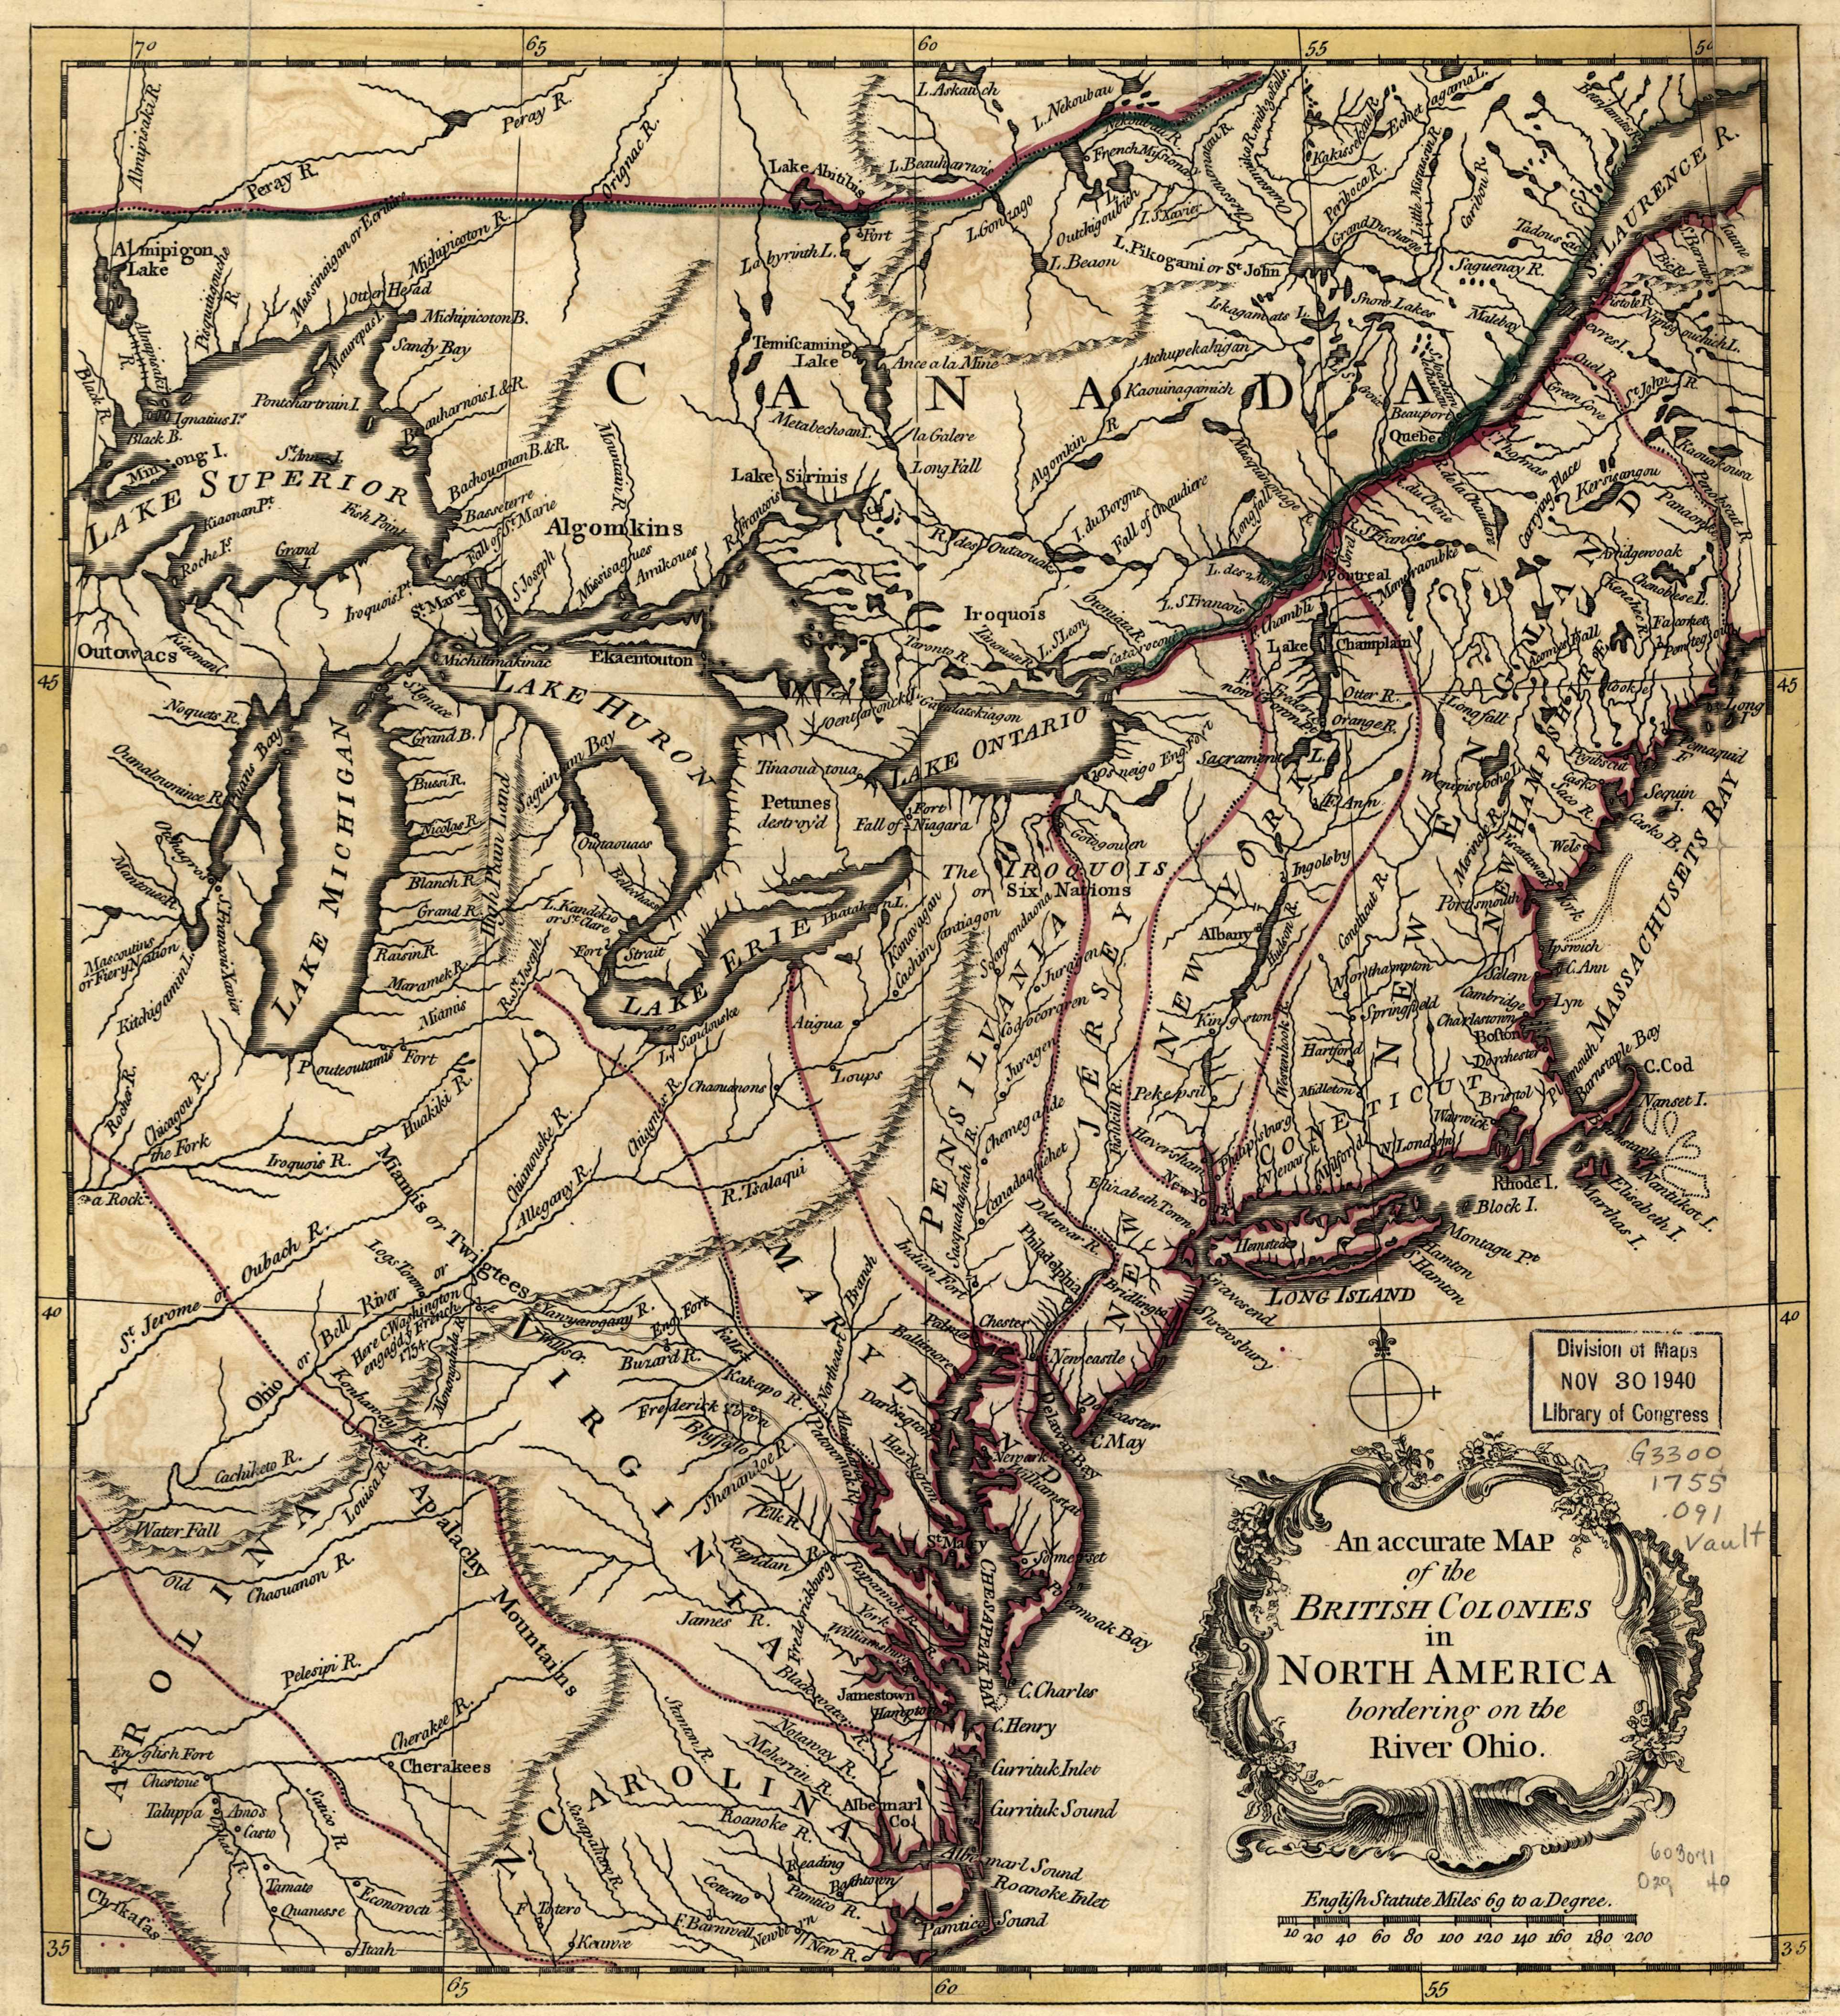 1750 to 1754 Pennsylvania Maps